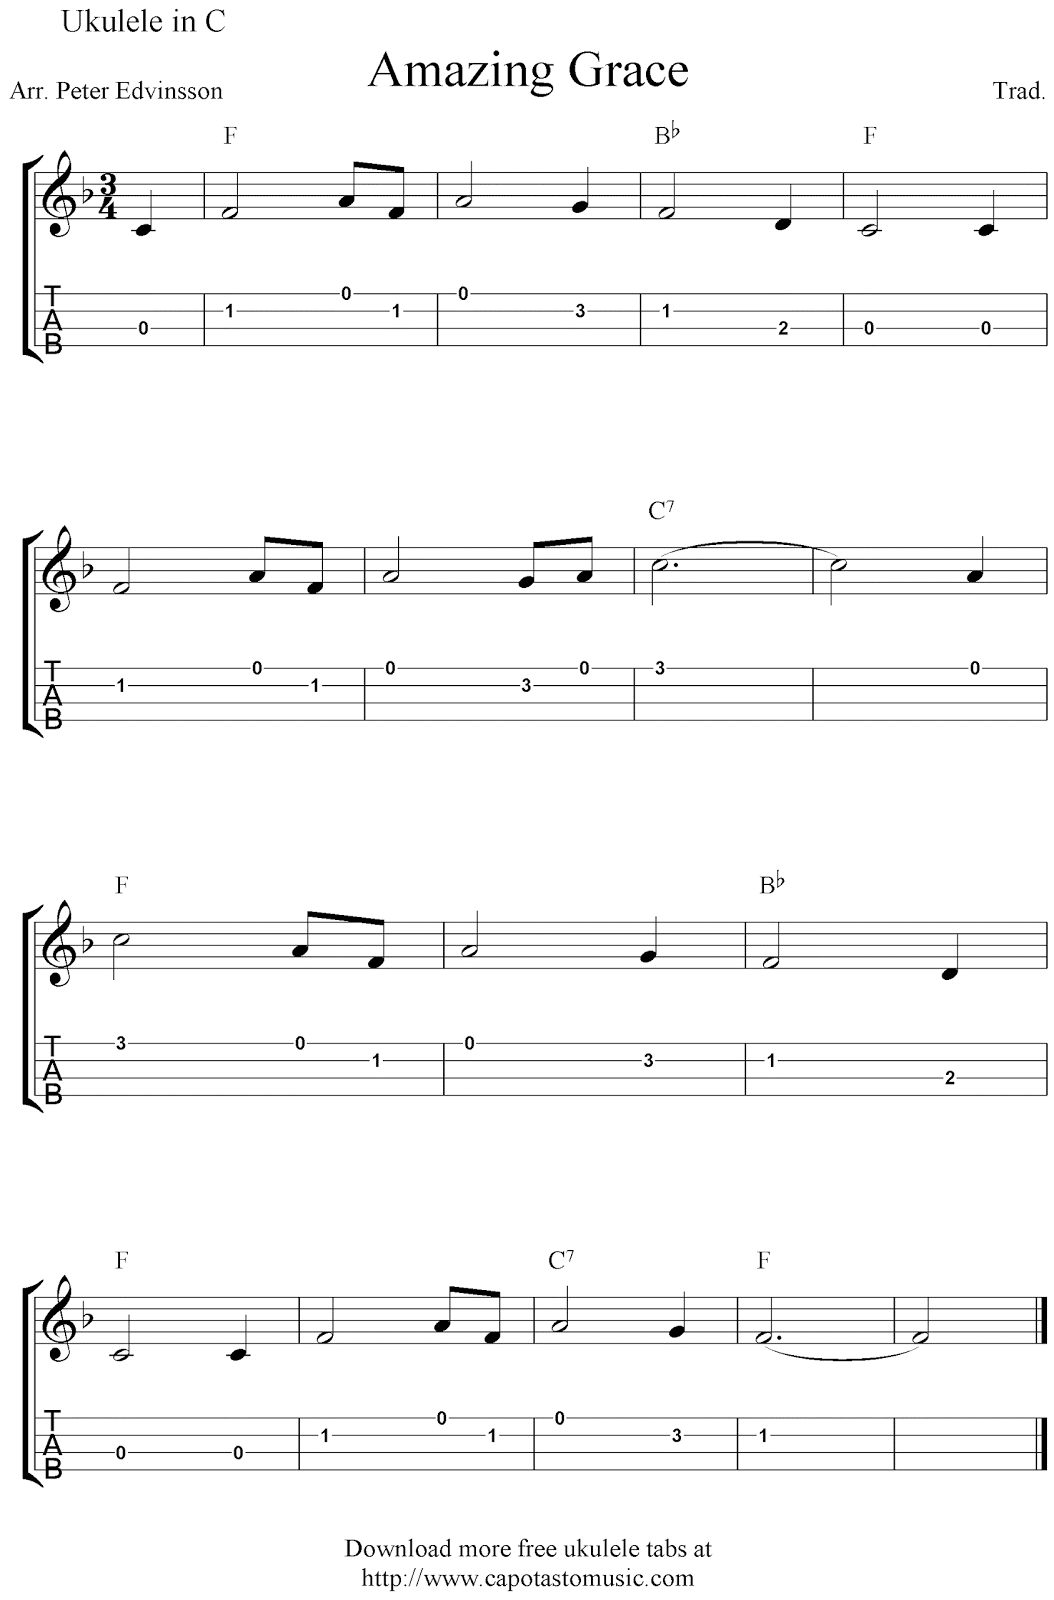 Amazing Grace, free ukulele tabs sheet music